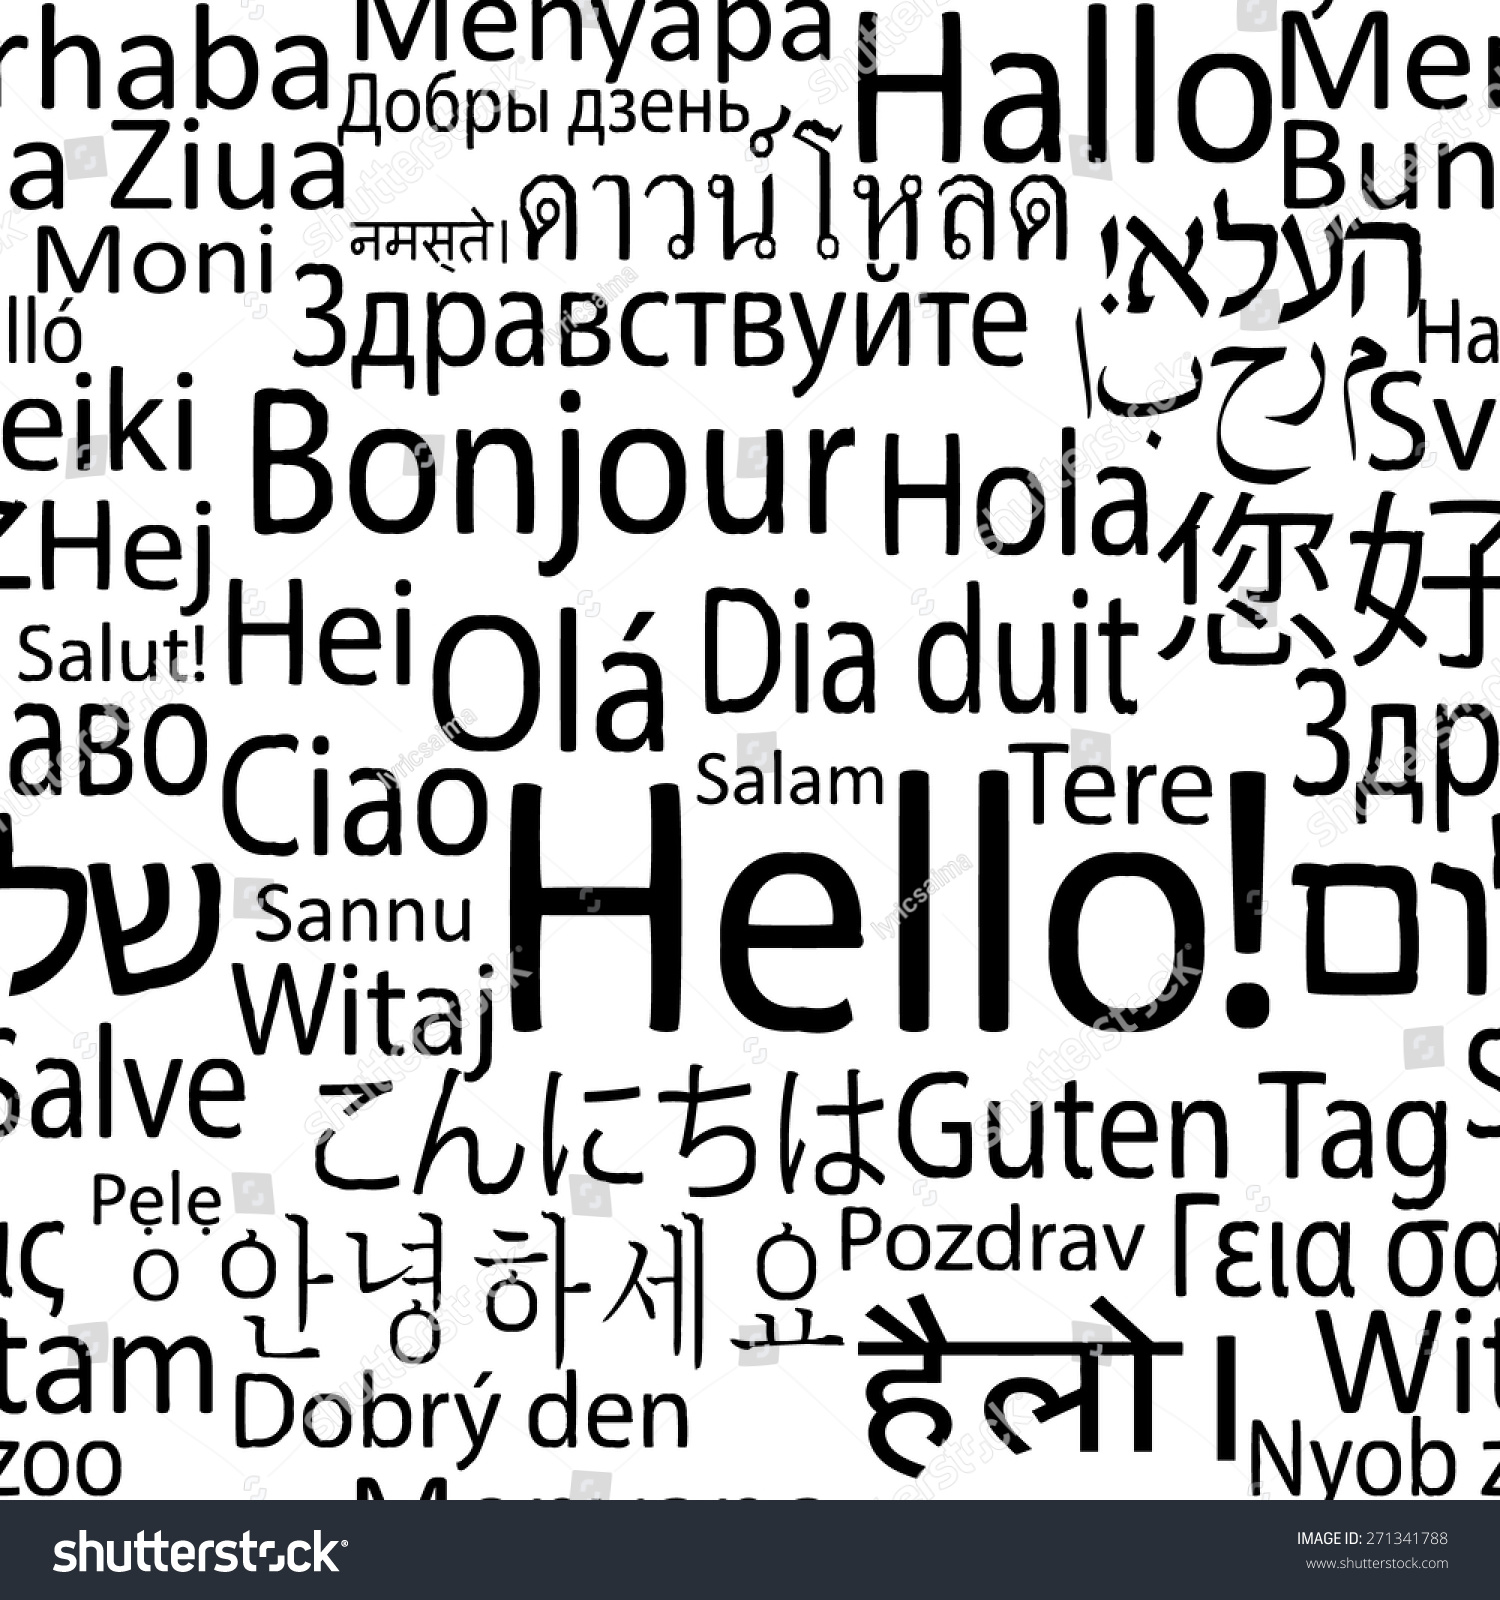 Hello Different Languages World Seamlees Background Stock Vector ...